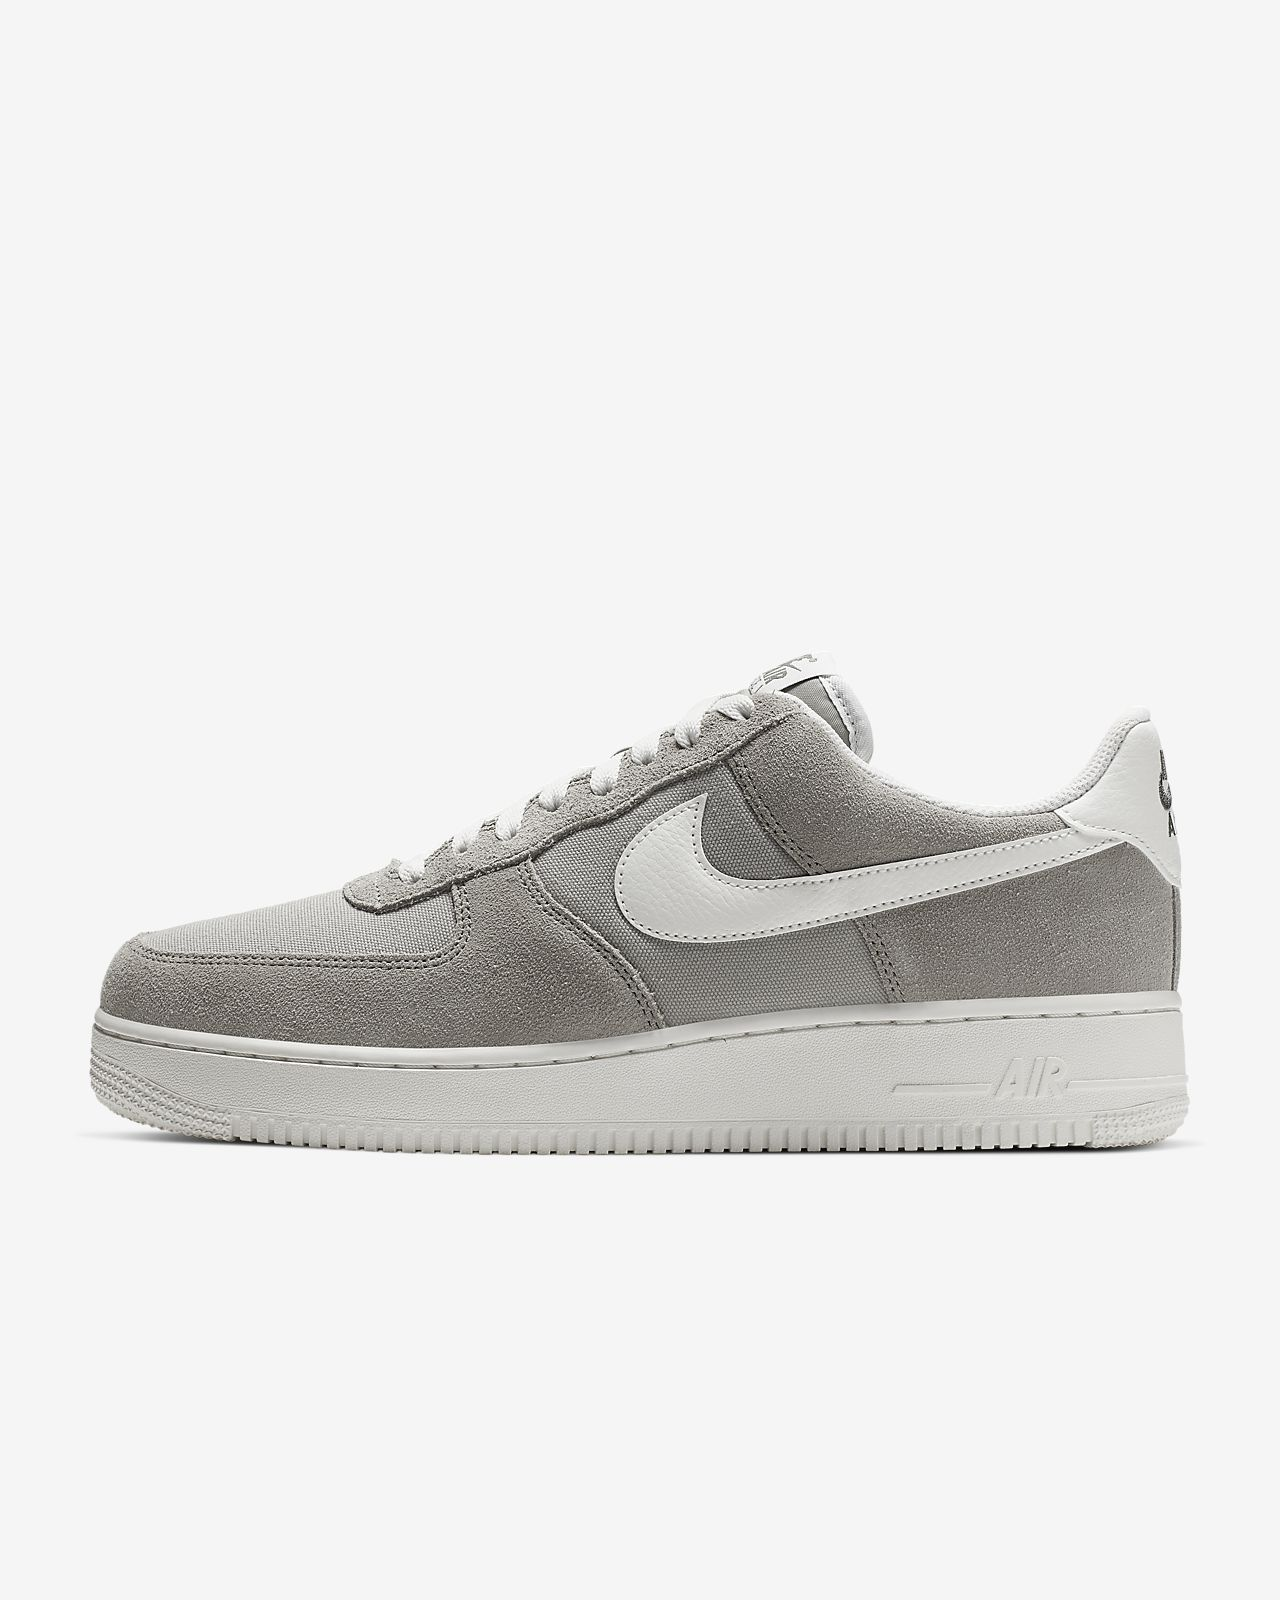 nike air force 1 hombre crema